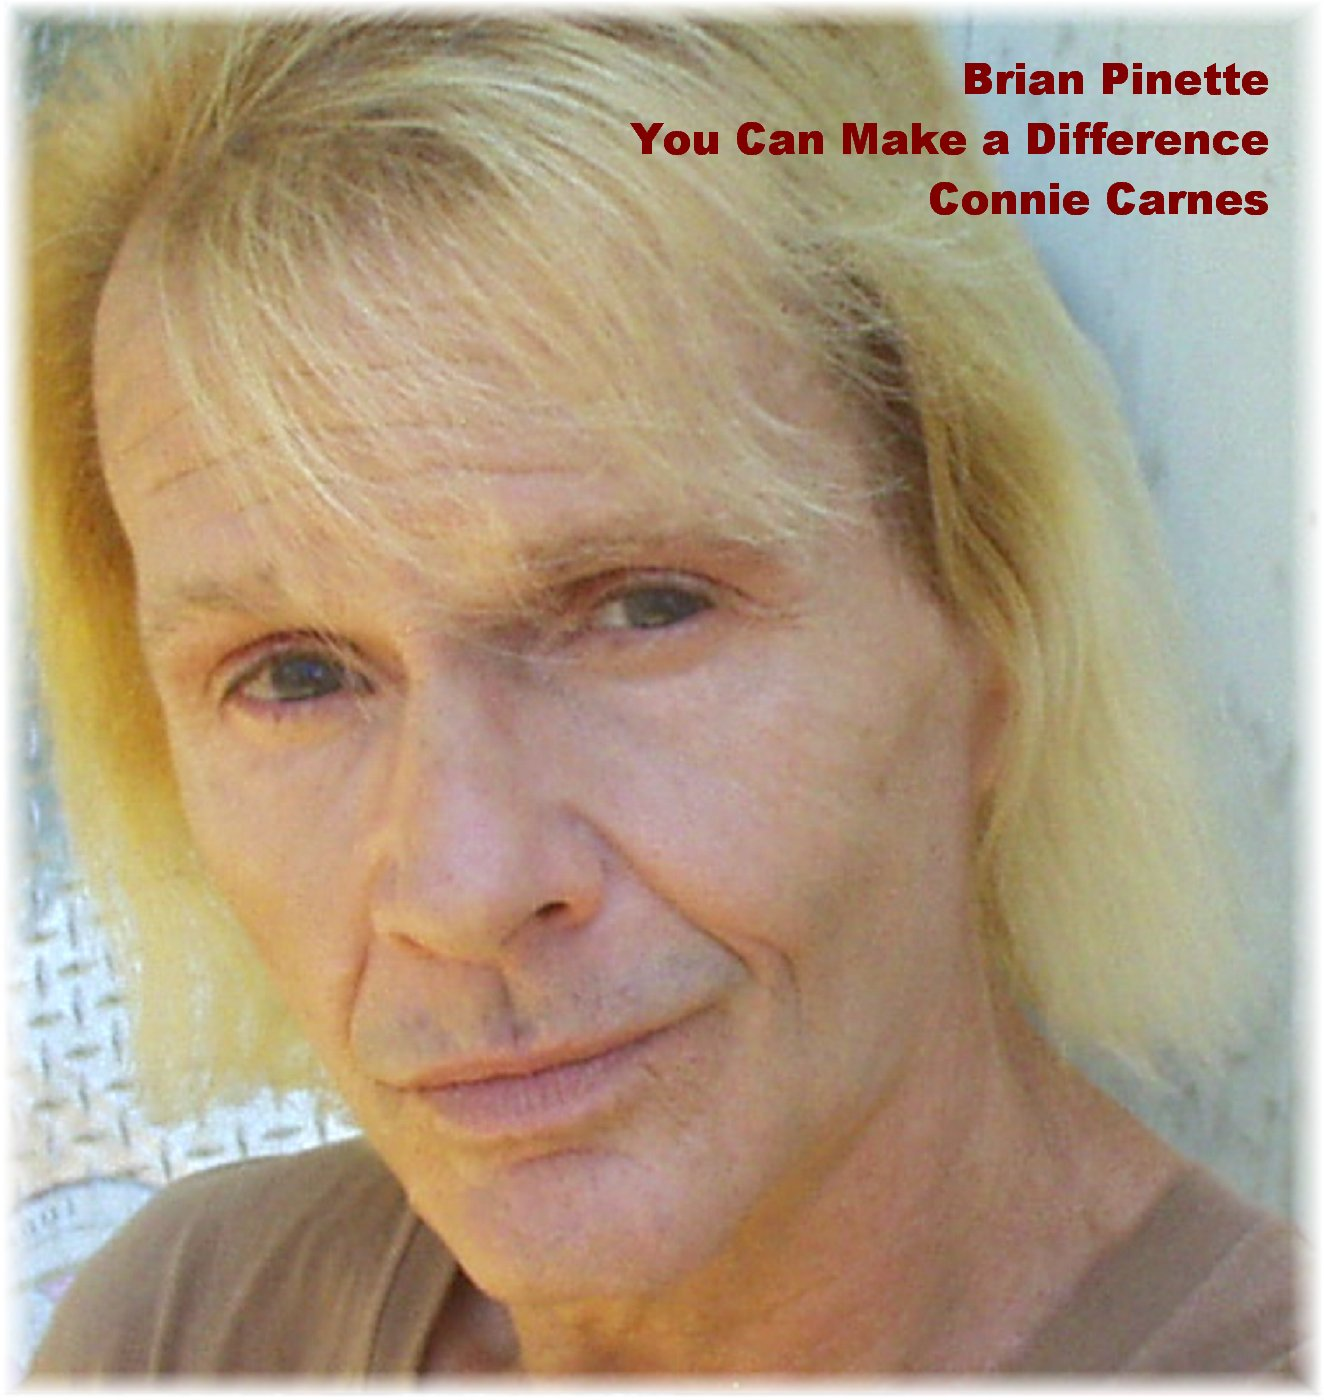 You Can Make a Difference sung by Brian Pinette & Connie Carnes